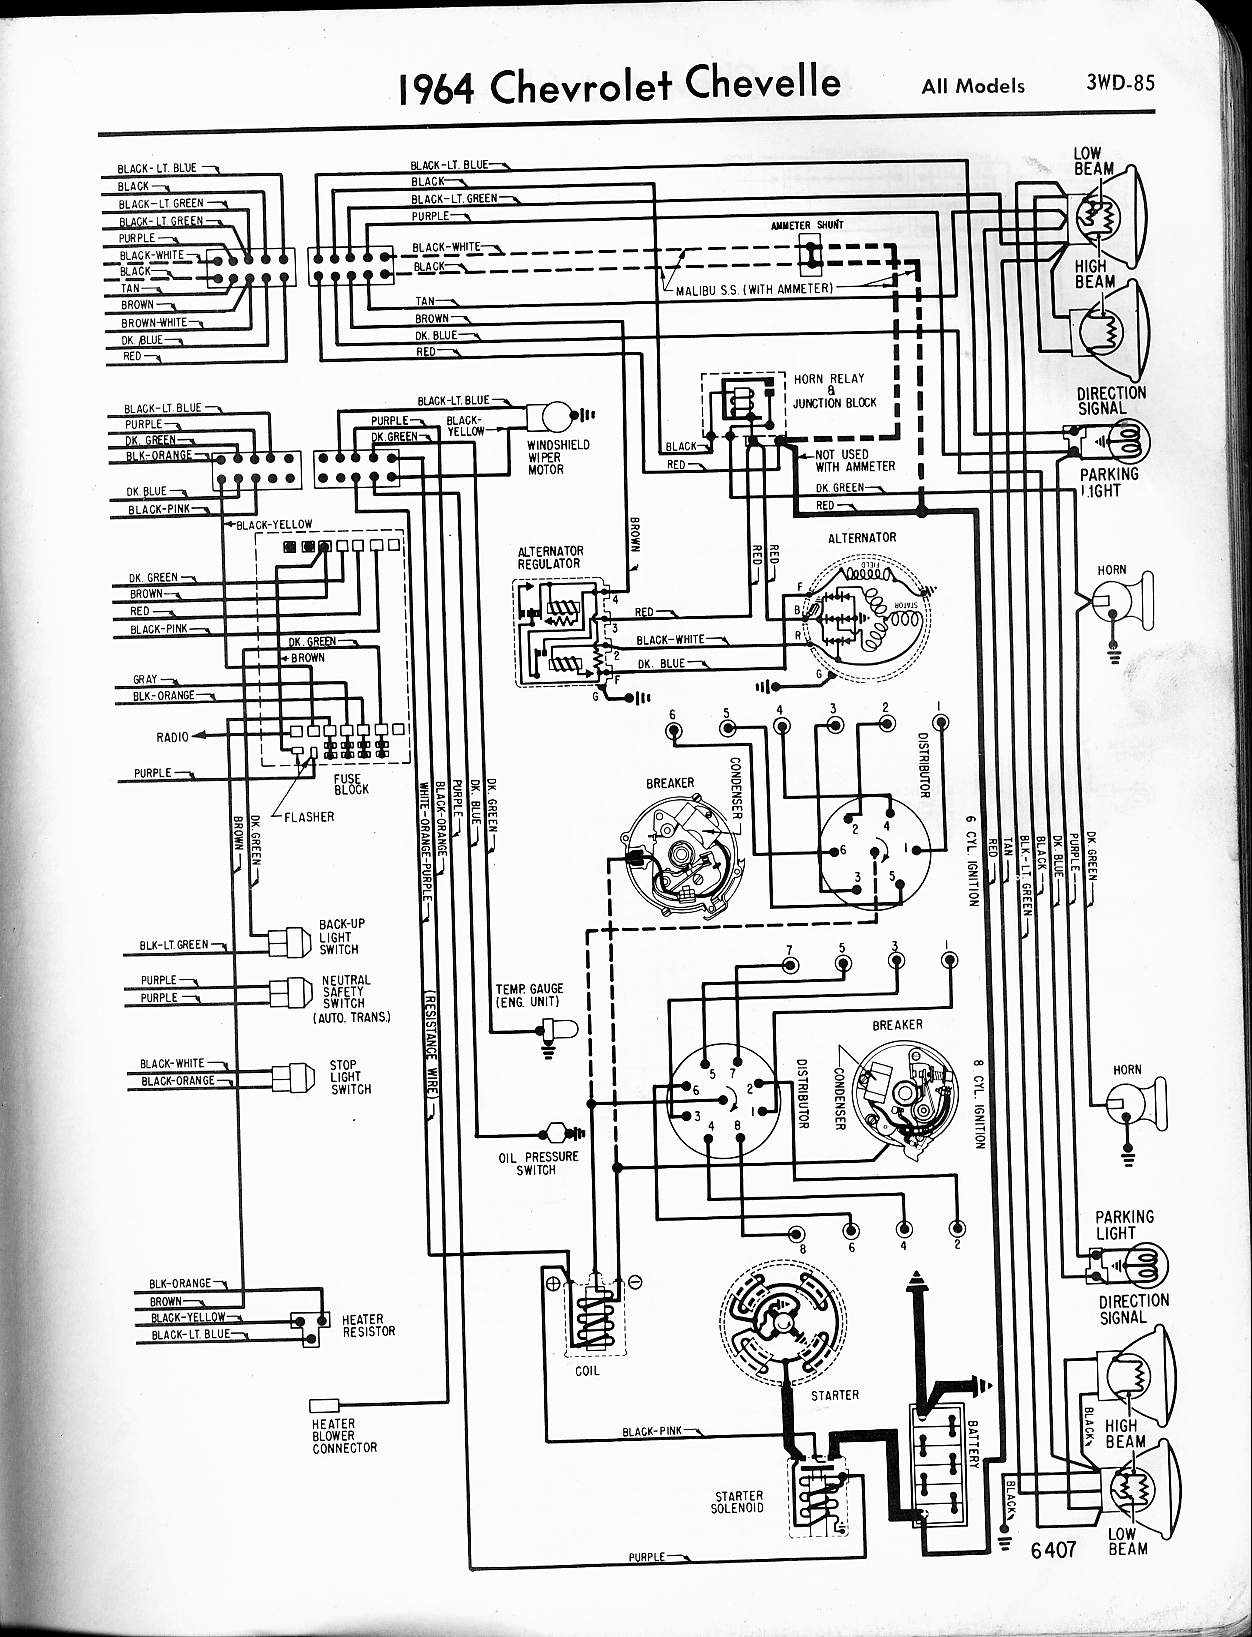 1964 Chevy Turn Signal Wiring Diagram Guide And Troubleshooting Of 64 Mustang C10 Under Dash Todays Rh 5 12 1813weddingbarn Com Gm Switch Basic